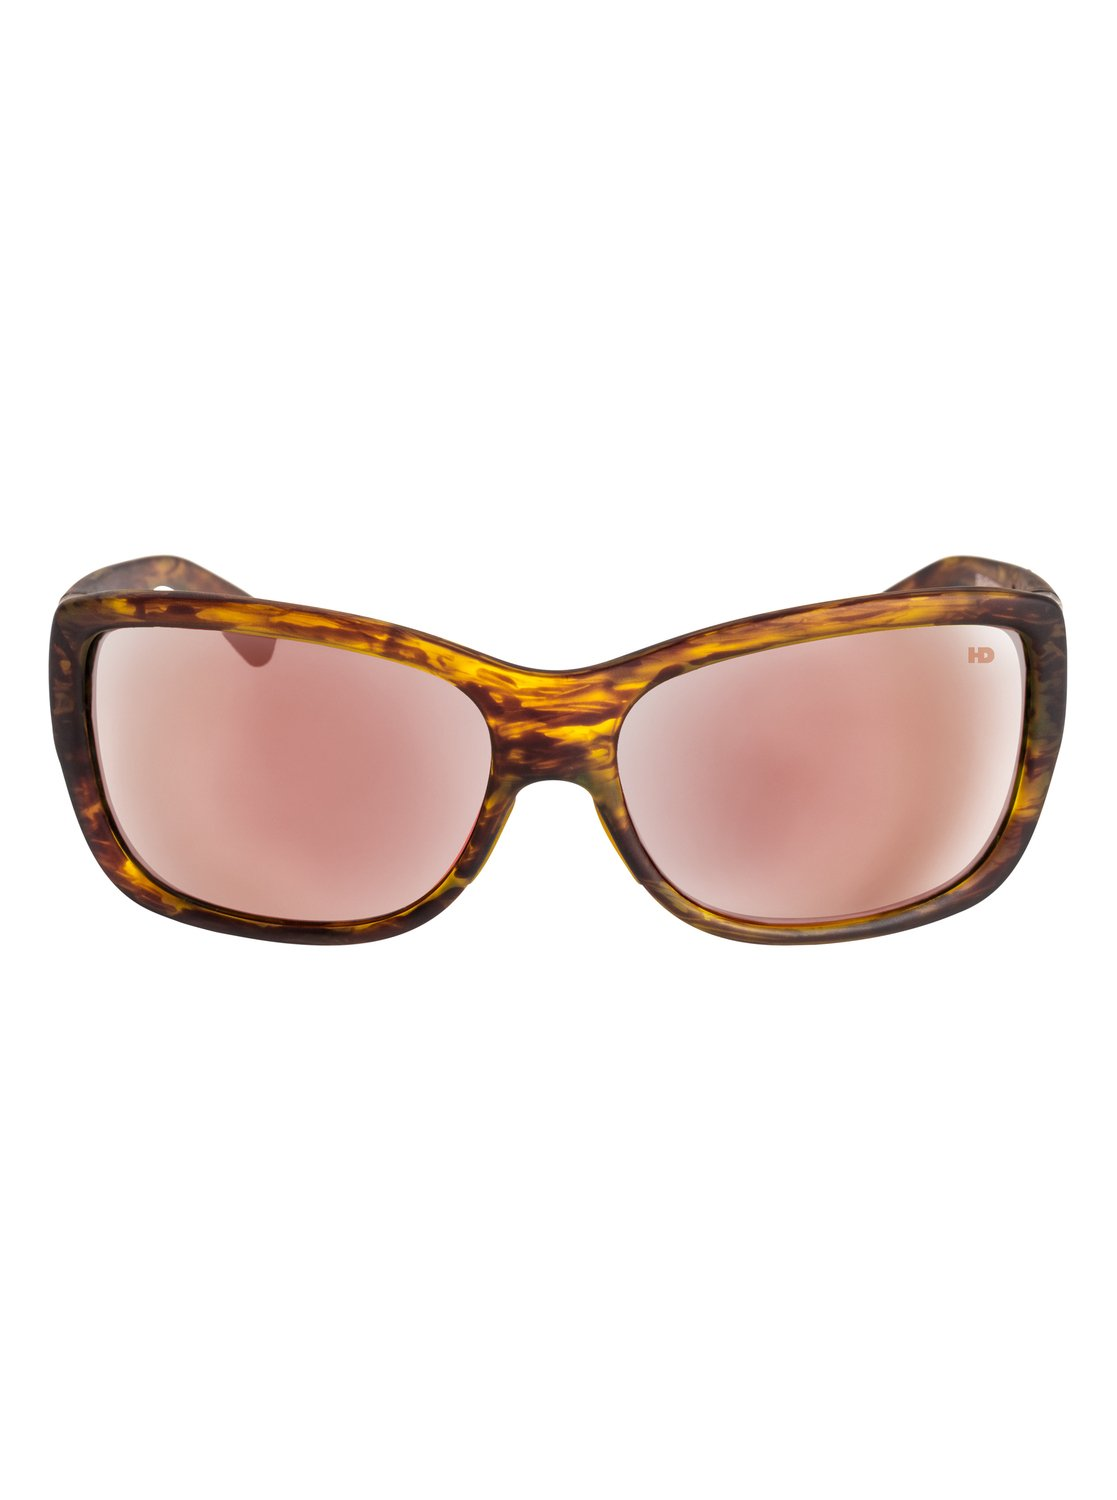 Roxy Sonnenbrille »Athena HD Polarised«, braun, havana brown